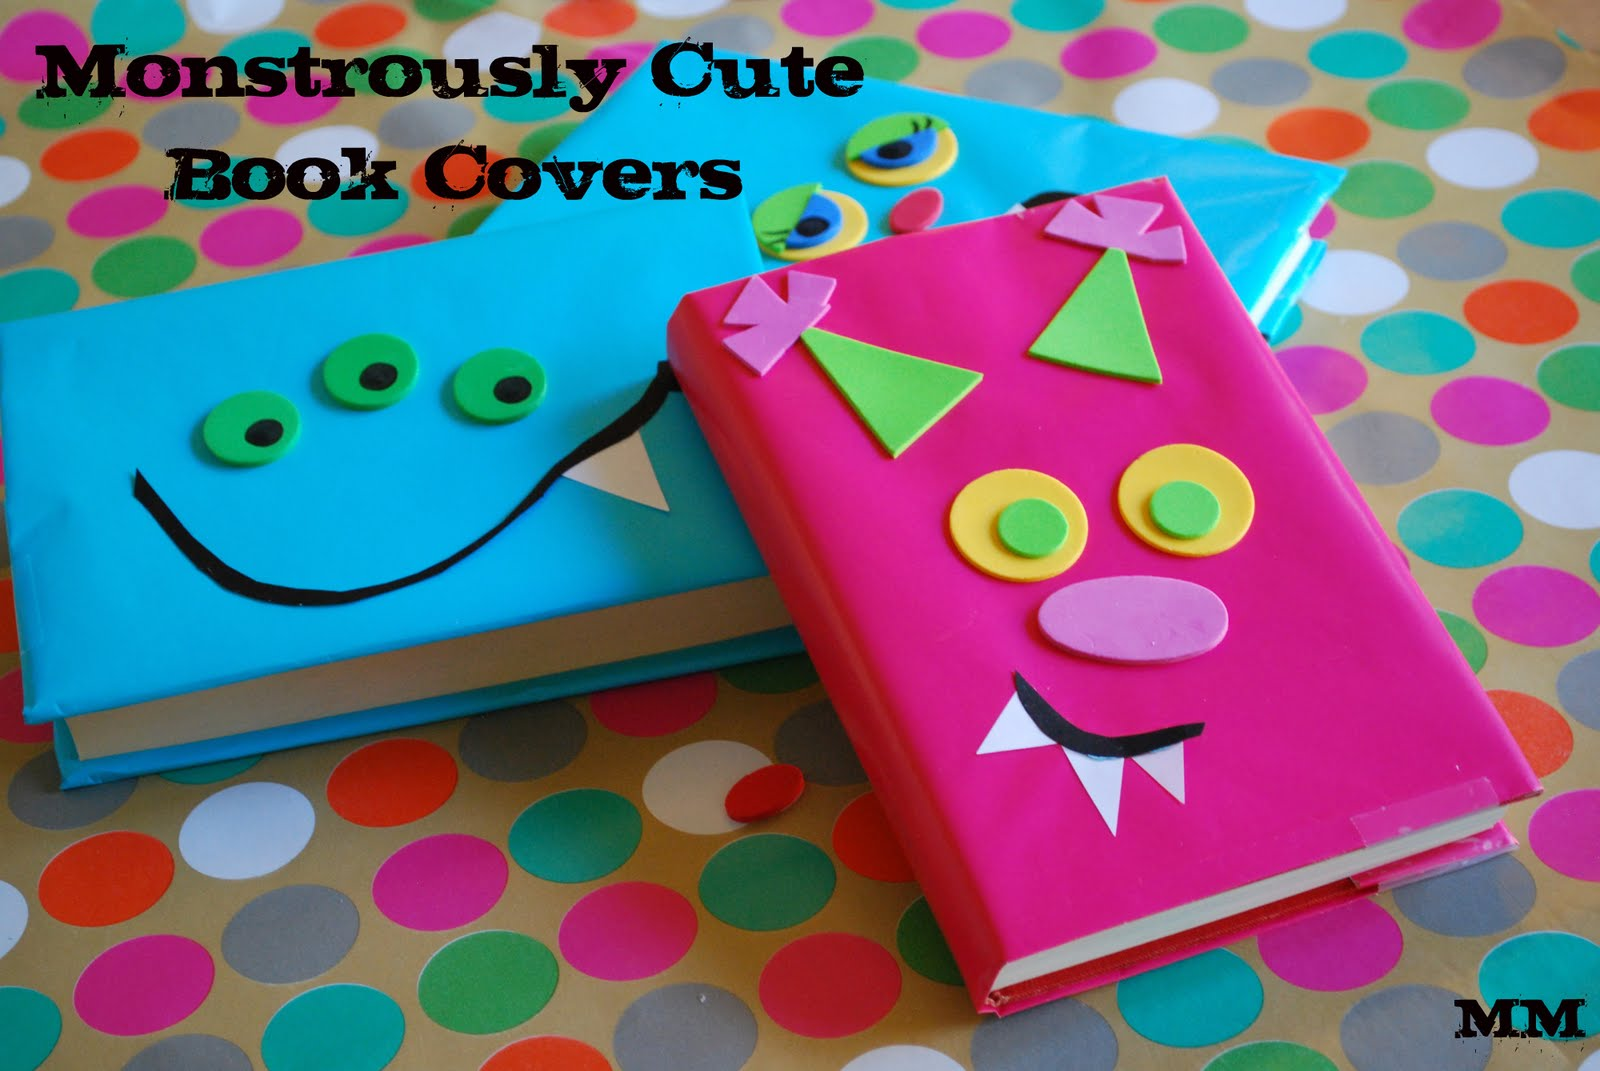 Creative Book Covers For School : Creative book cover ideas for school tolg jcmanagement